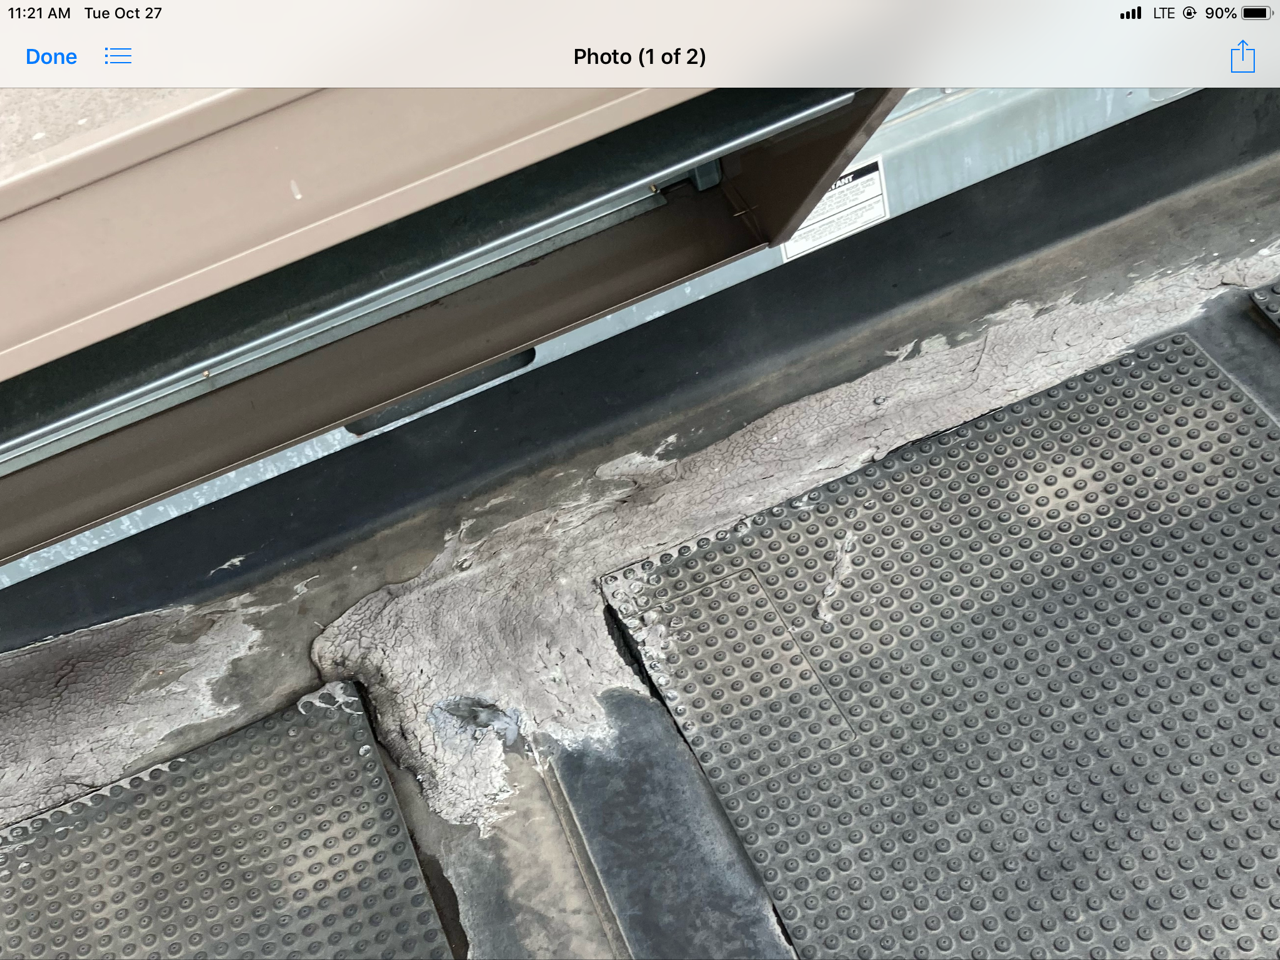 This is a view of the concrete around the A/C Unit on a commercial roof.